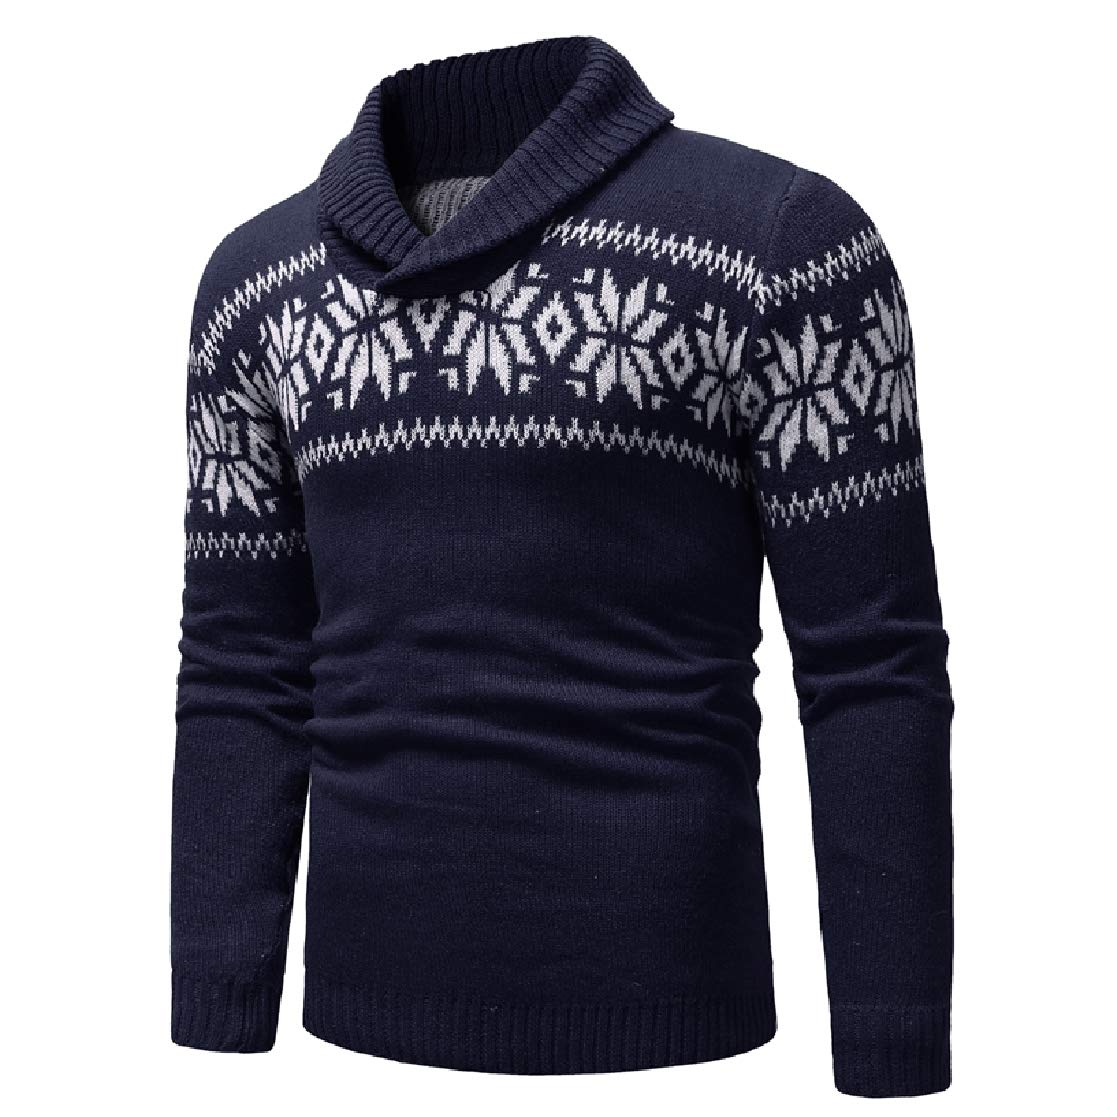 YUNY Mens Knit Crewneck Pullover Fall /& Winter Lapel Snowflake Sweaters Navy Blue XL